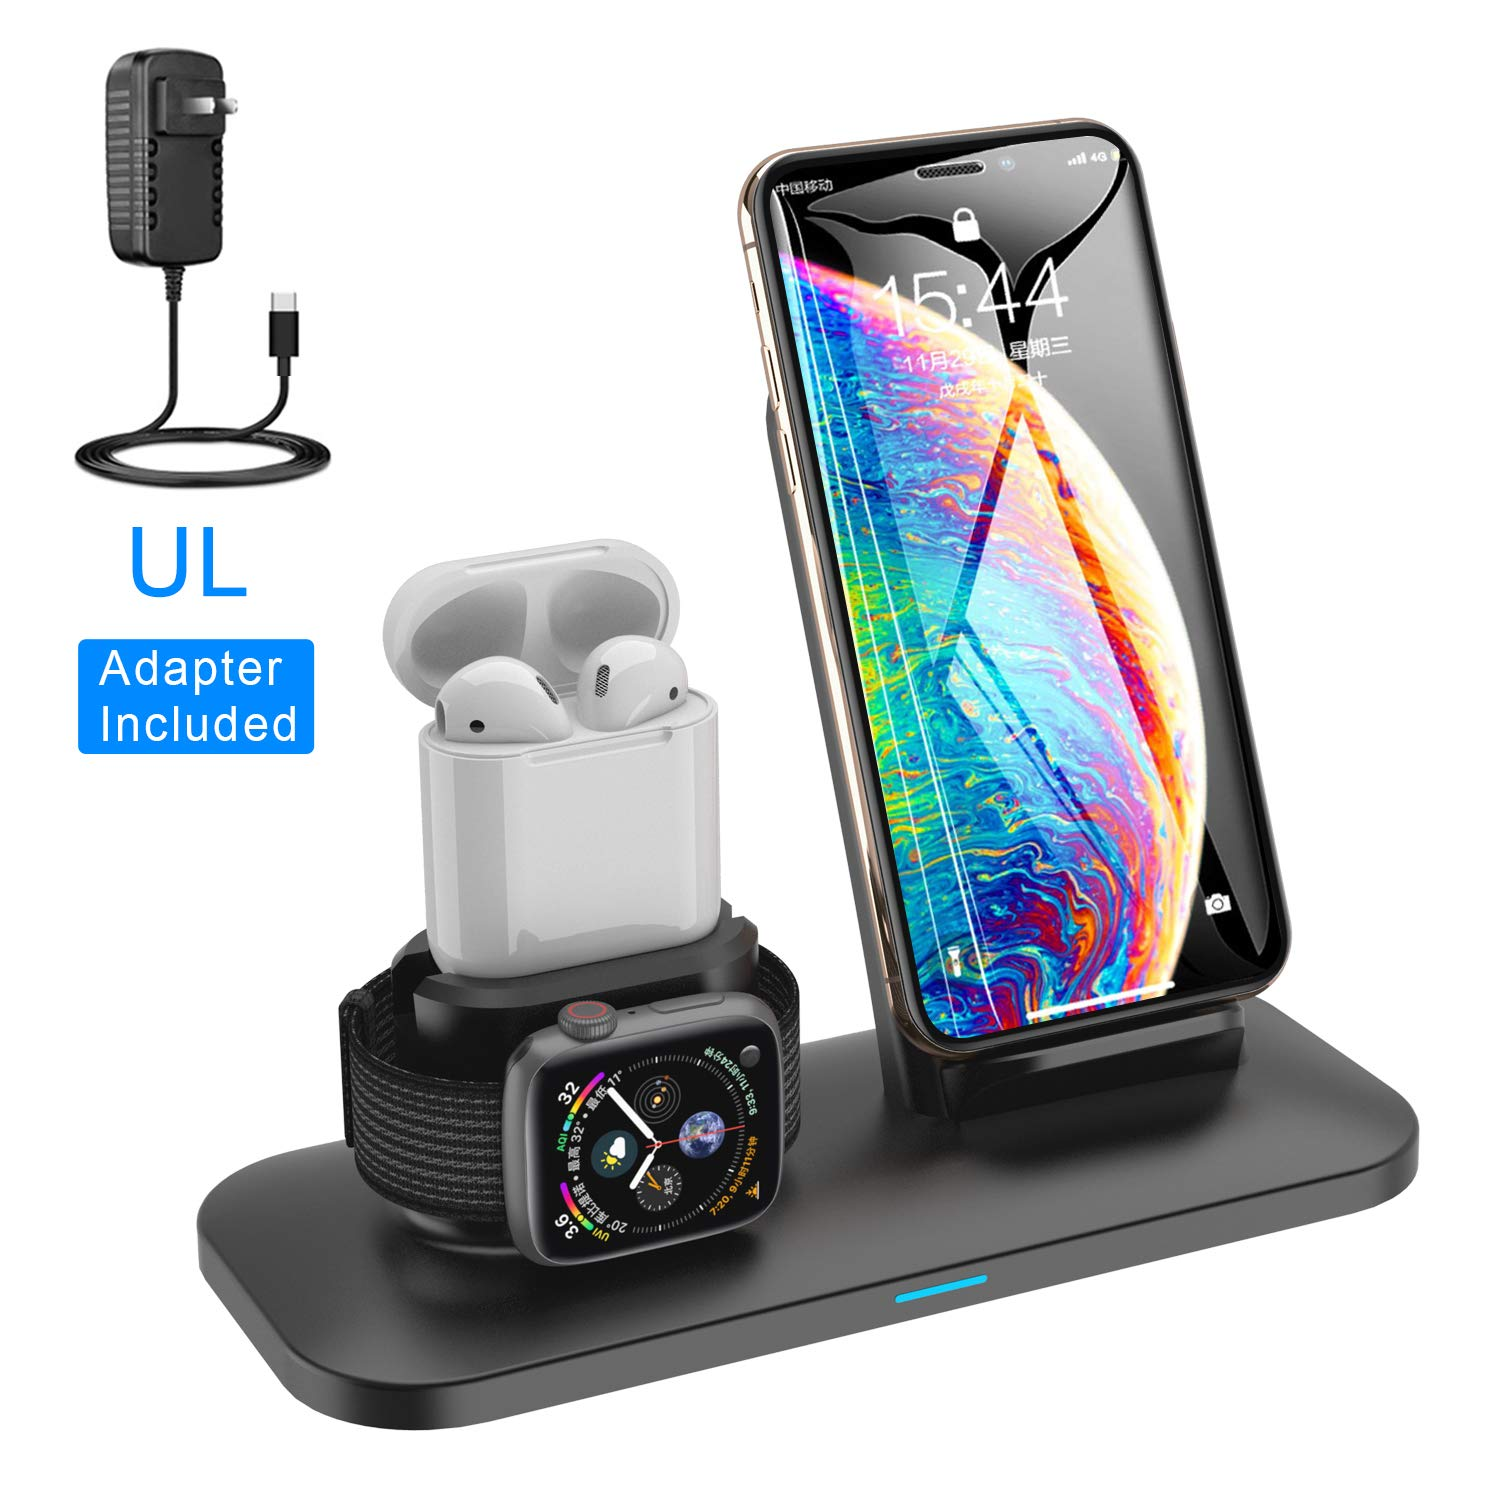 SIMPFUN Wireless Charger W01 Wireless Qi Fast Charging Station for APPL Watch 3/2/1, Air Pods, iPhone Xs/XR/X / 8/8 Plus, Samsung Galaxy S9 / S9 Plus/Note 8 / S8 / S8 Plus by SIMPFUN